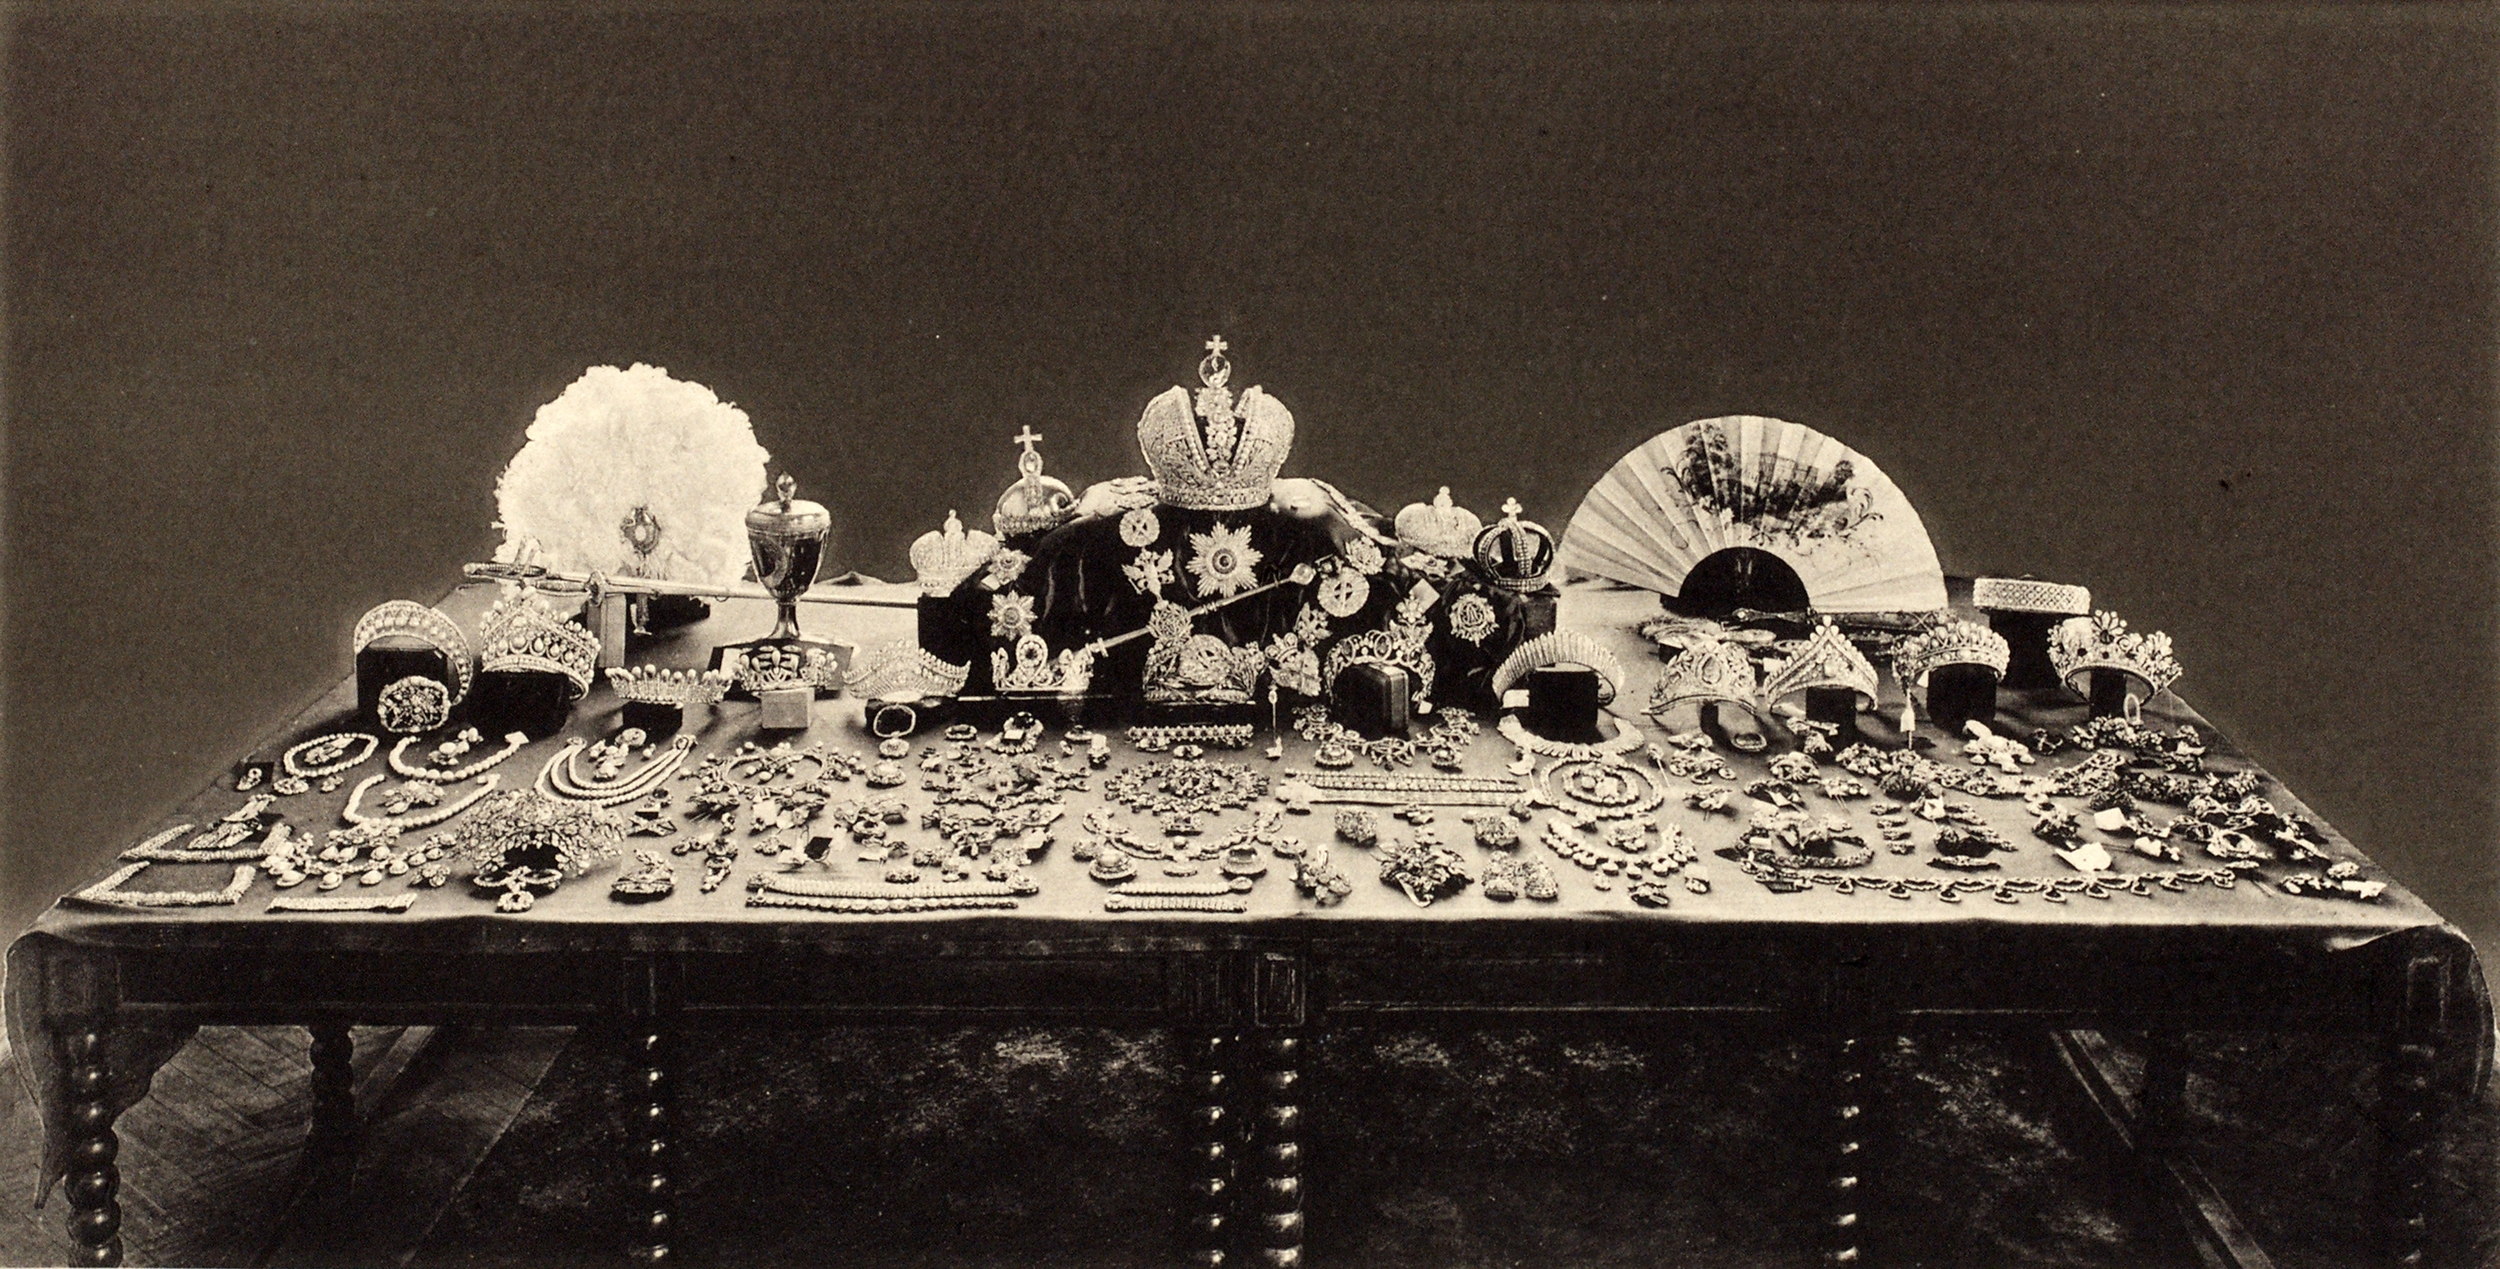 One-stop shopping?  This likely is the first photograph ever taken of the Russian crown jewels, from an album issued in 1922, and included in the collection of George F. Kunz, now at the U.S. Geological Survey Library. The album ostensibly was crafted to create interest amongst buyers. Or was it?  Click  for very large zoom. (Photo courtesy U.S. Geological Survey)